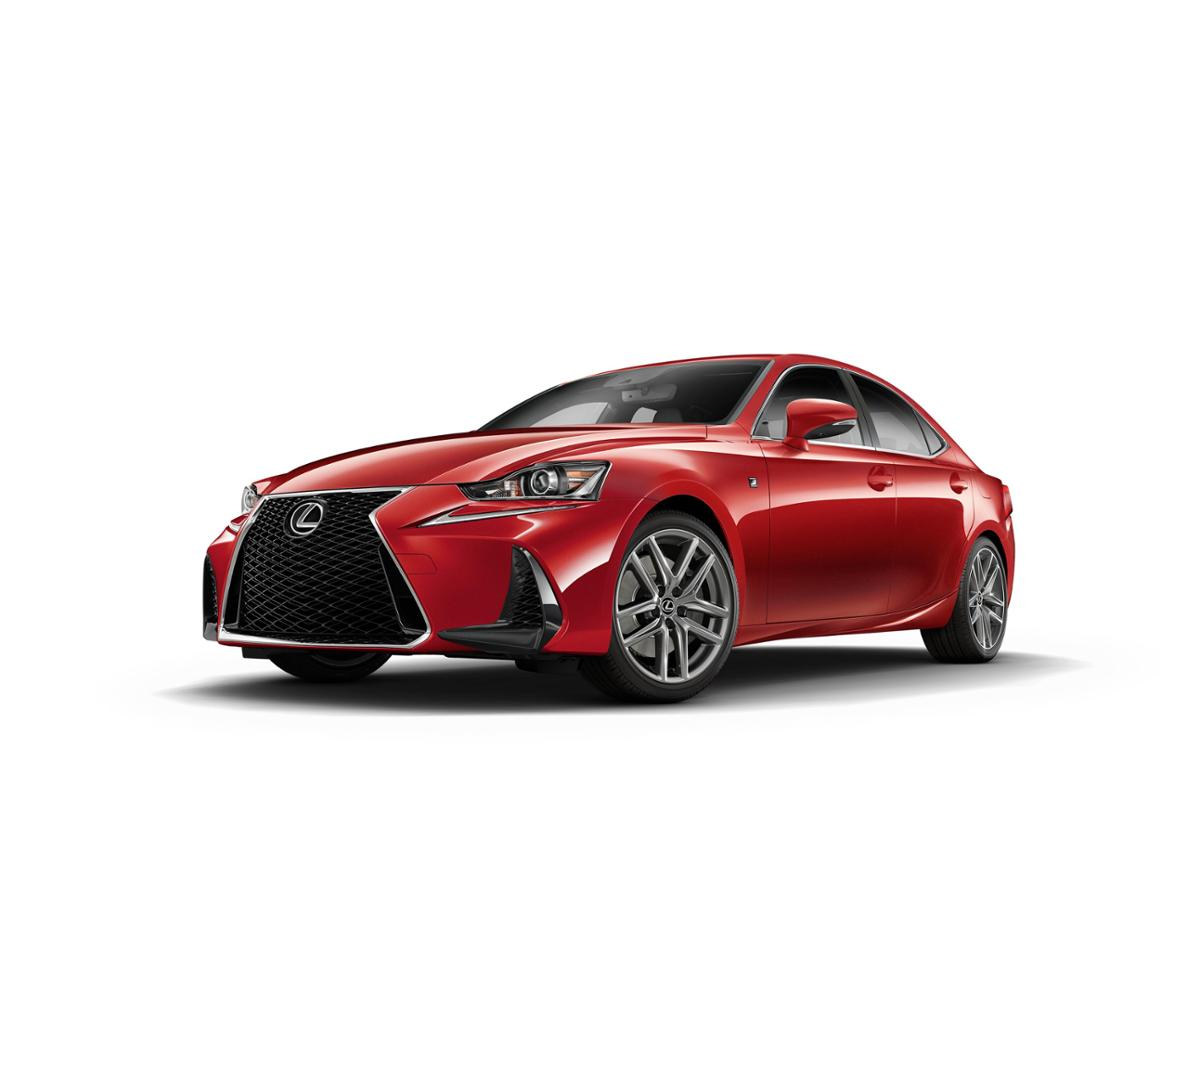 Lexus Sport: 2019 Lexus IS 350 F Sport Review By Mark Fulmer